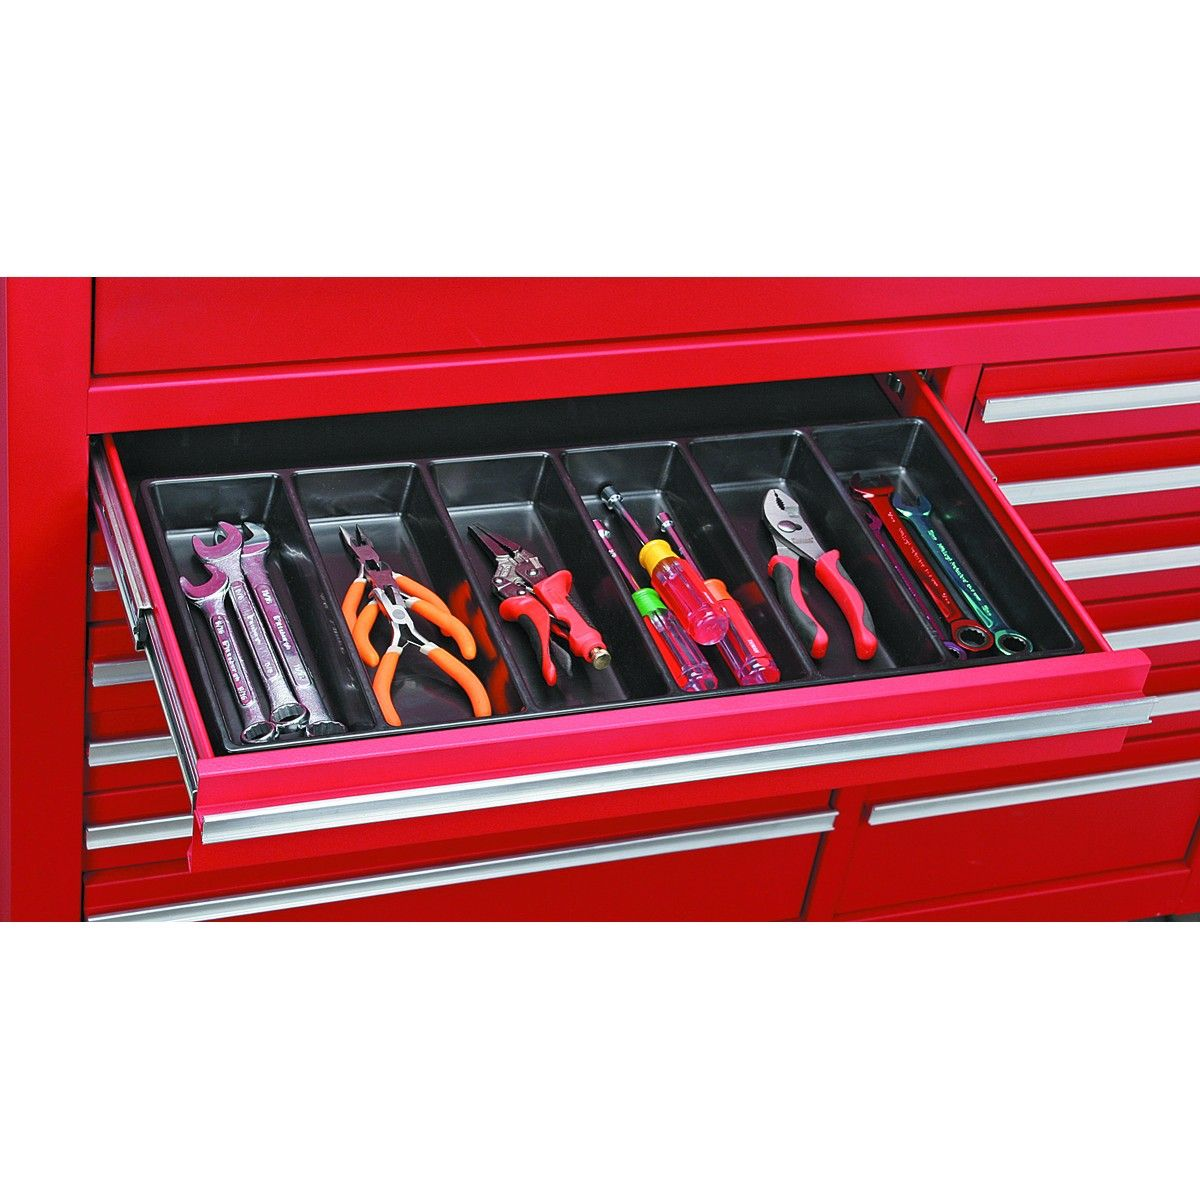 6 Compartment Drawer Organizer Tool Chest Organization Drawer